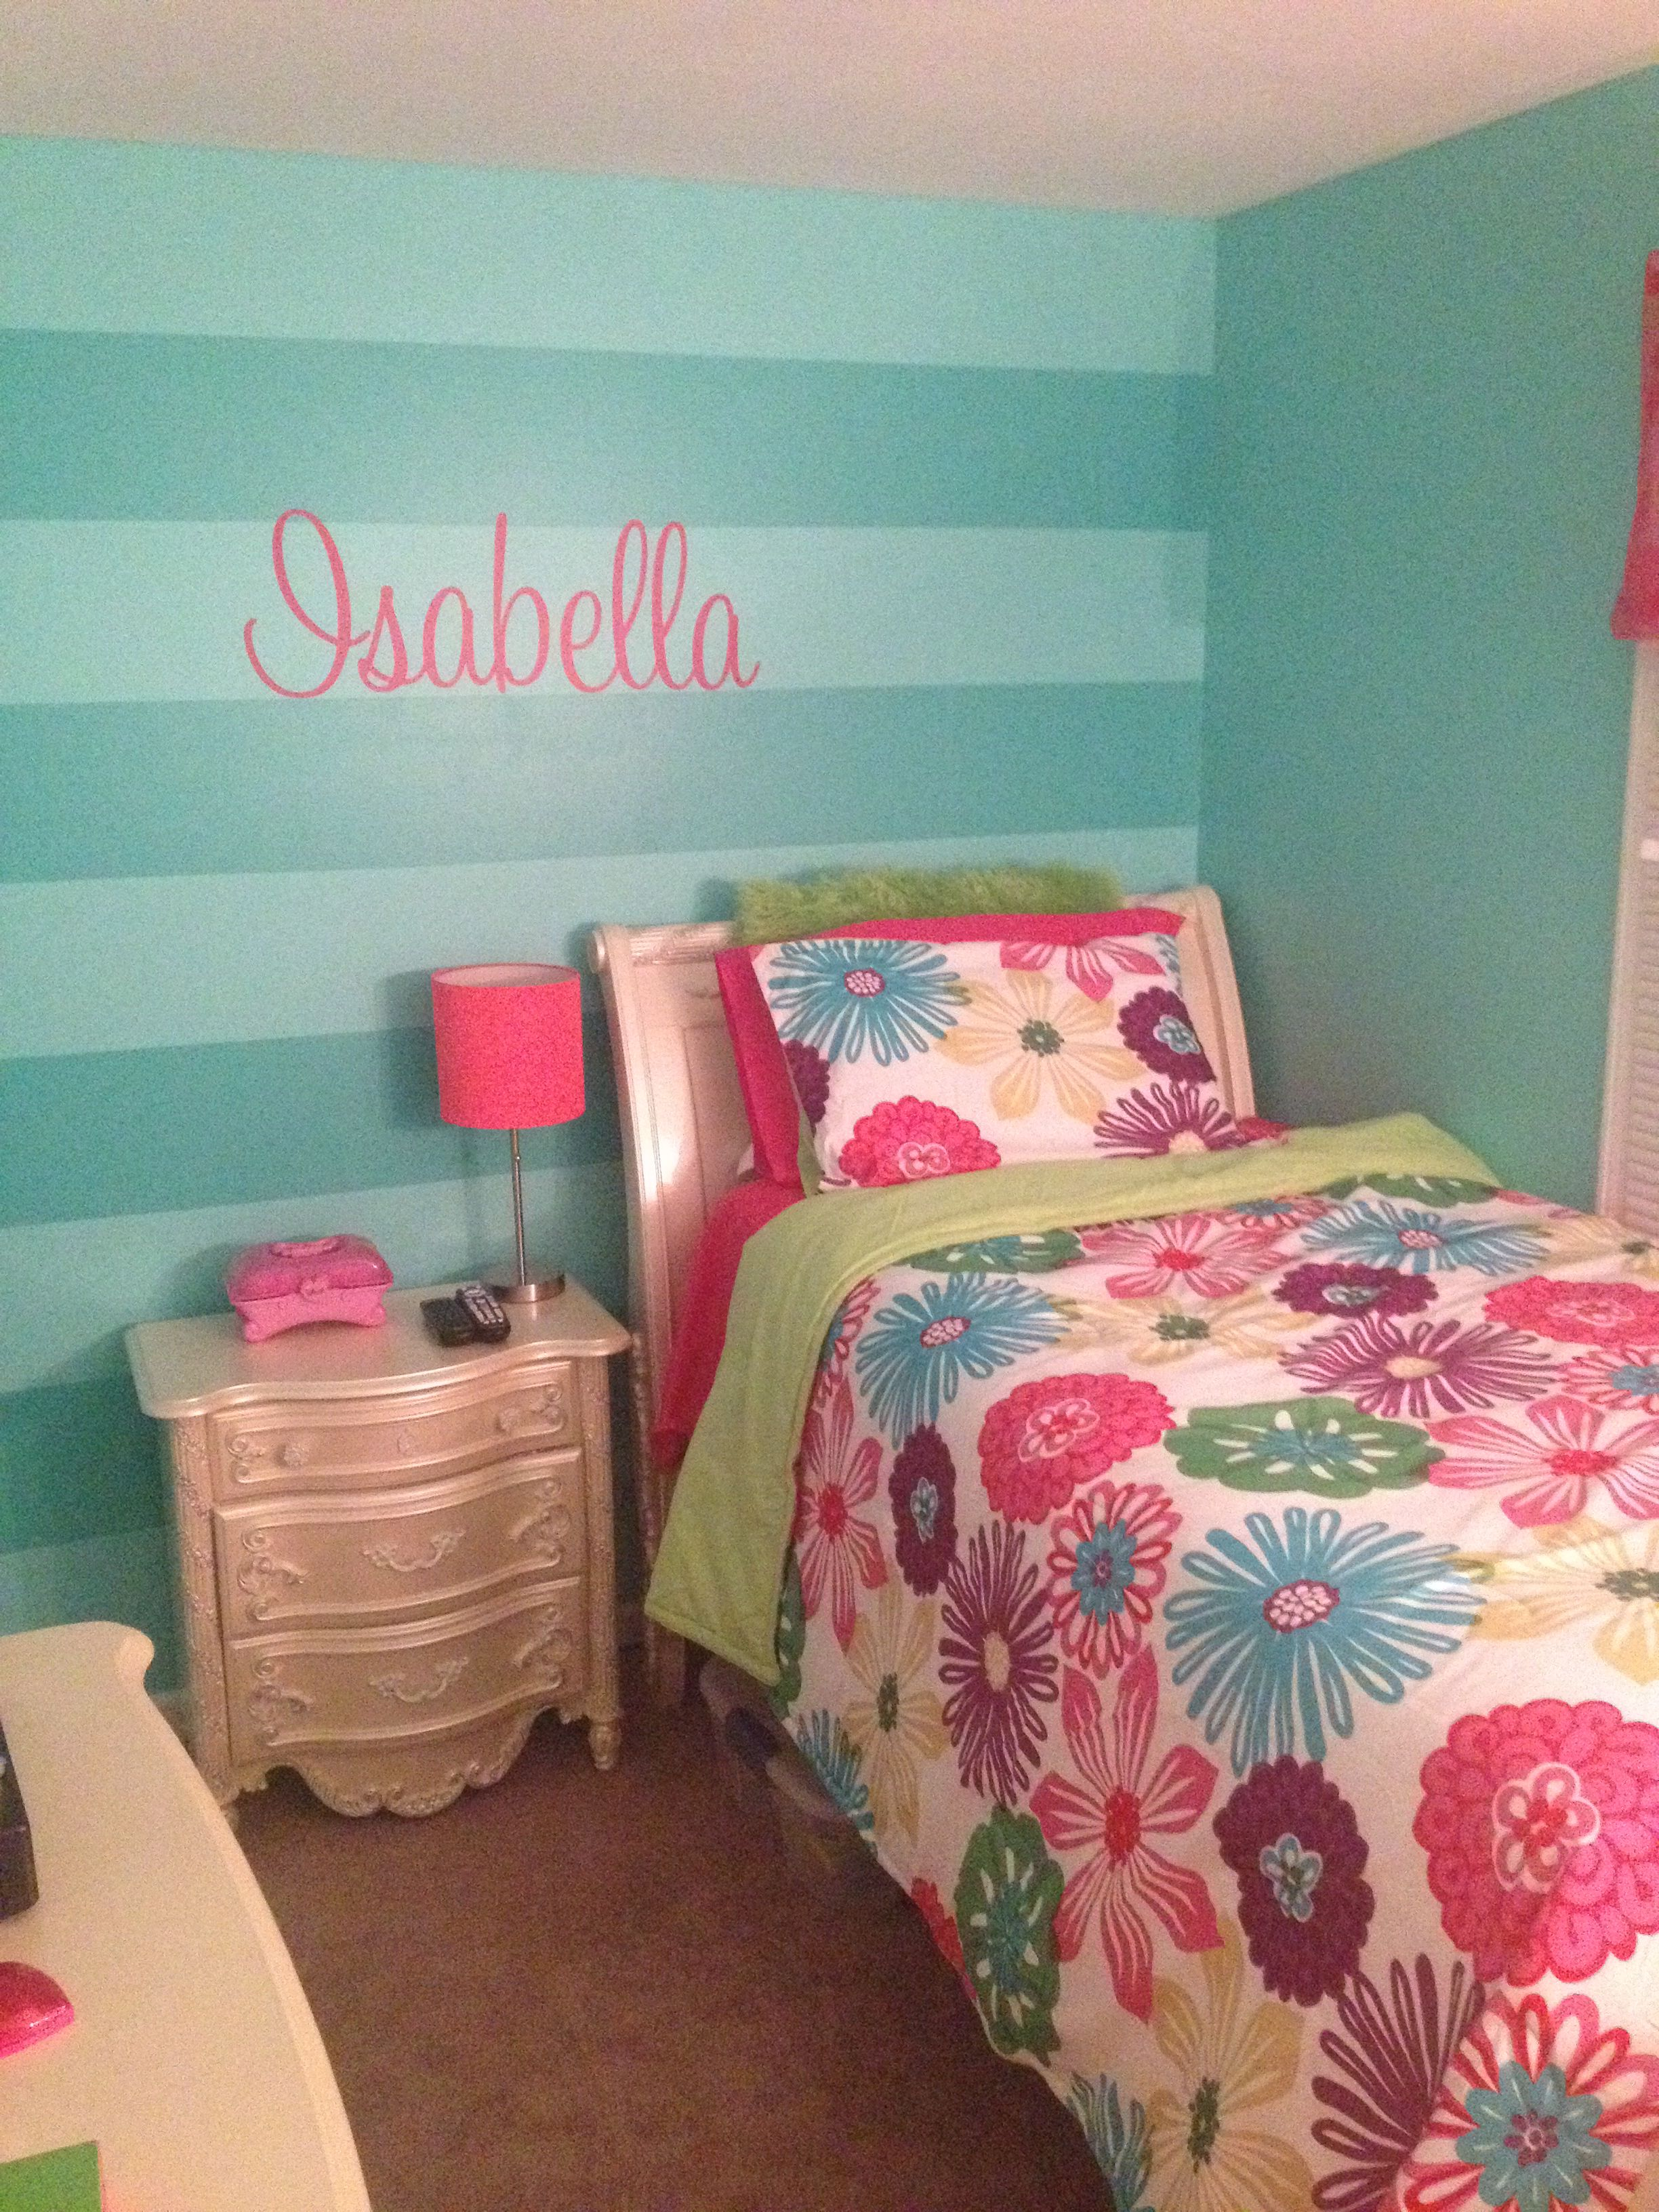 Girls Teal Stripe Wall And Isabella Wall Decal From Etsy Sherwin Williams Tantalizing Teal Paint And S Girls Room Colors Girls Bedroom Paint Diy Girls Bedroom